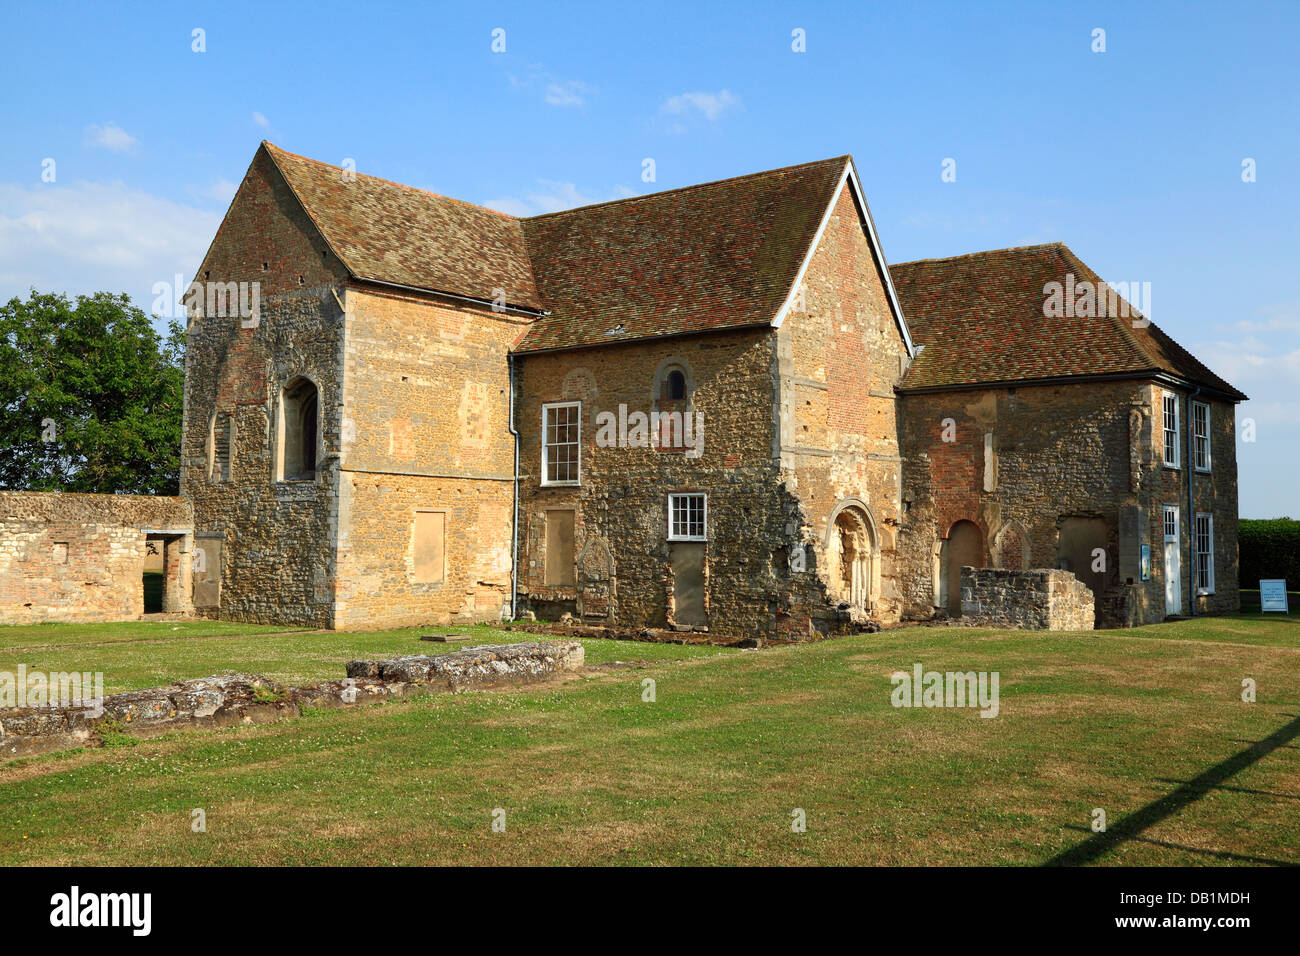 Denny Abbey, Cambridgeshire, England UK, English abbeys - Stock Image